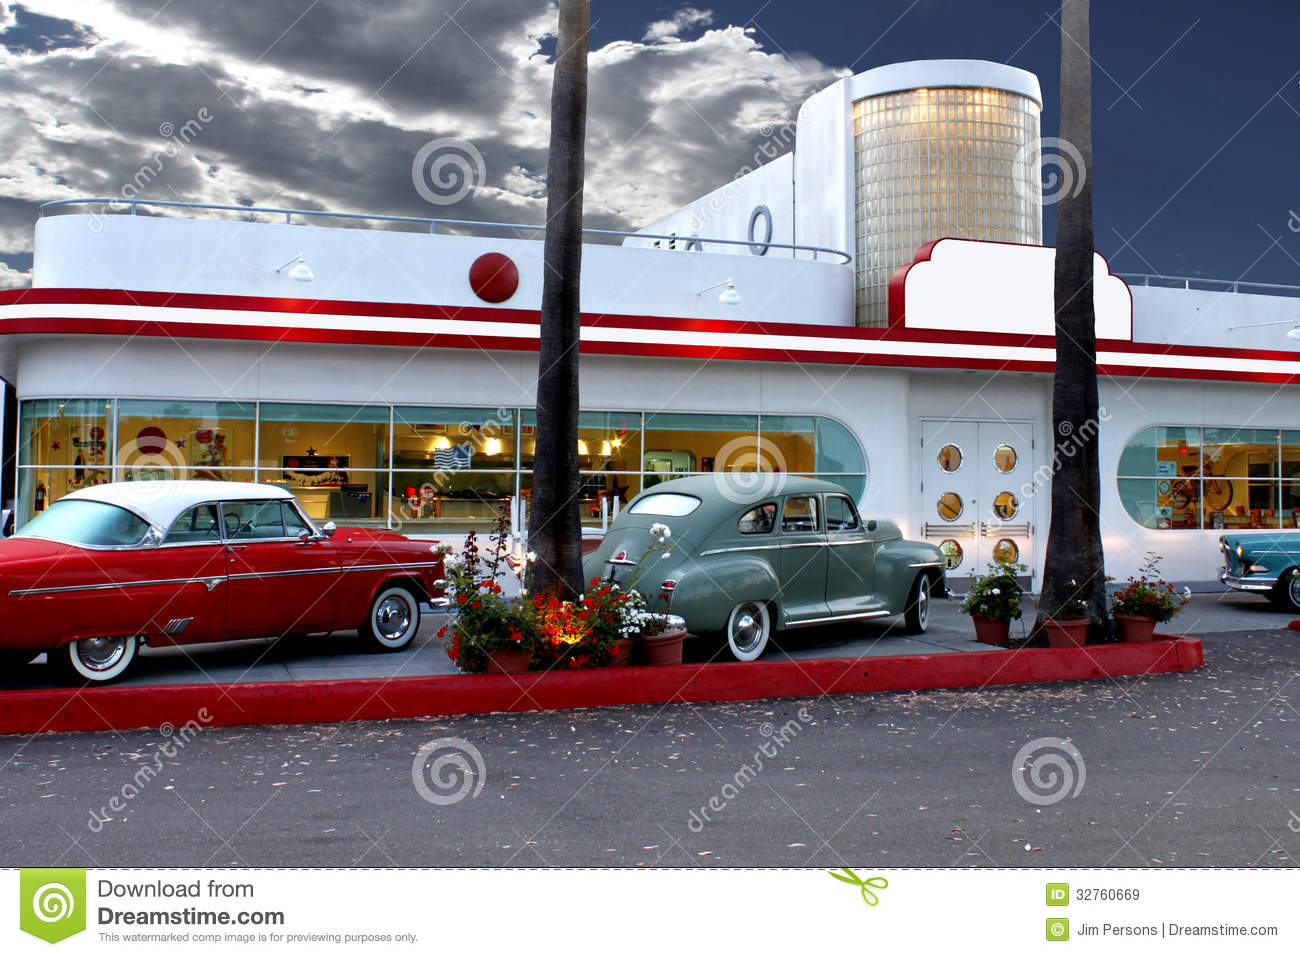 3 121 Retro Diner Photos Free Royalty Free Stock Photos From Dreamstime